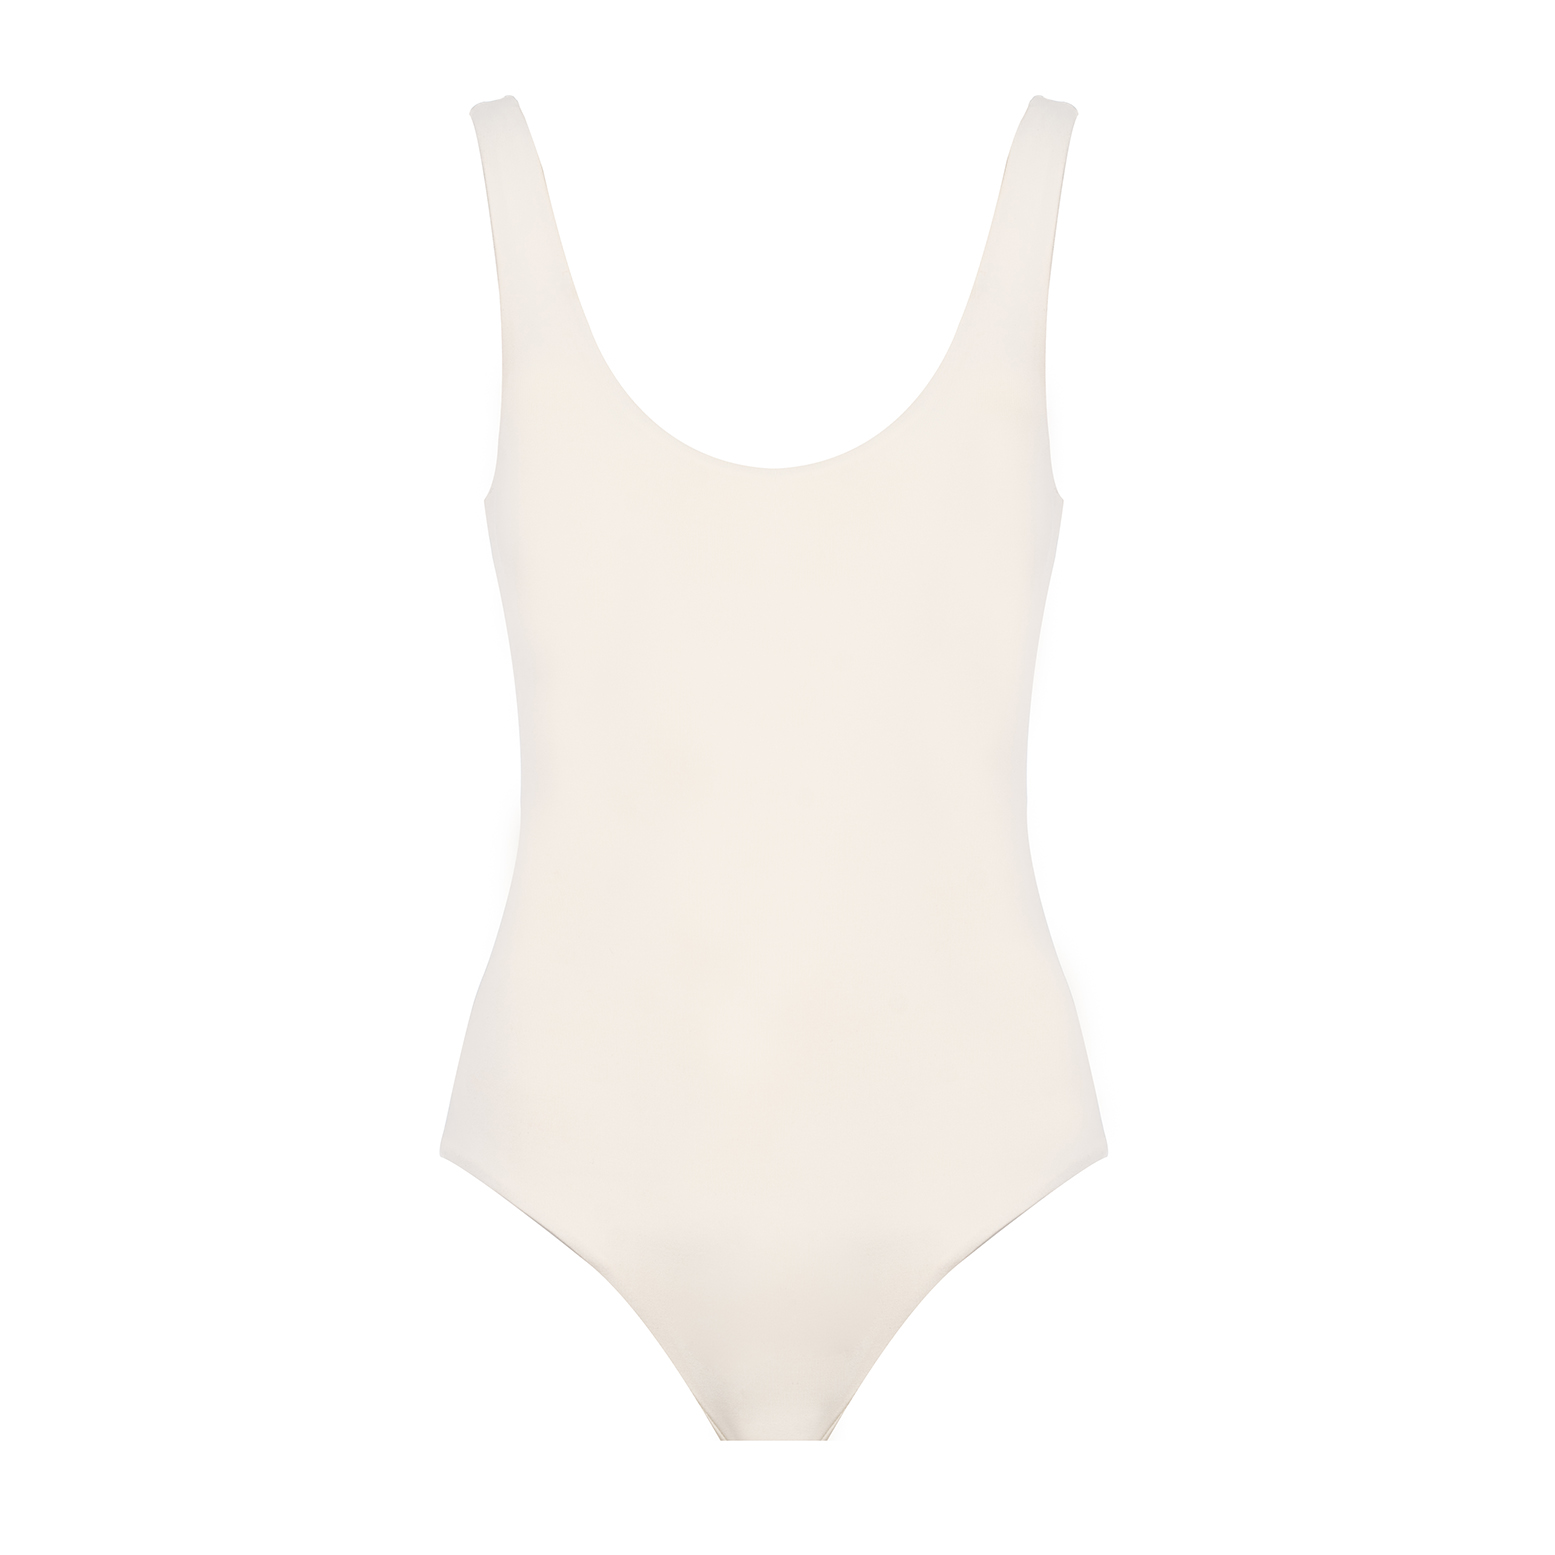 Linda Raff Collection -ONE-PIECE BASIC WHITE